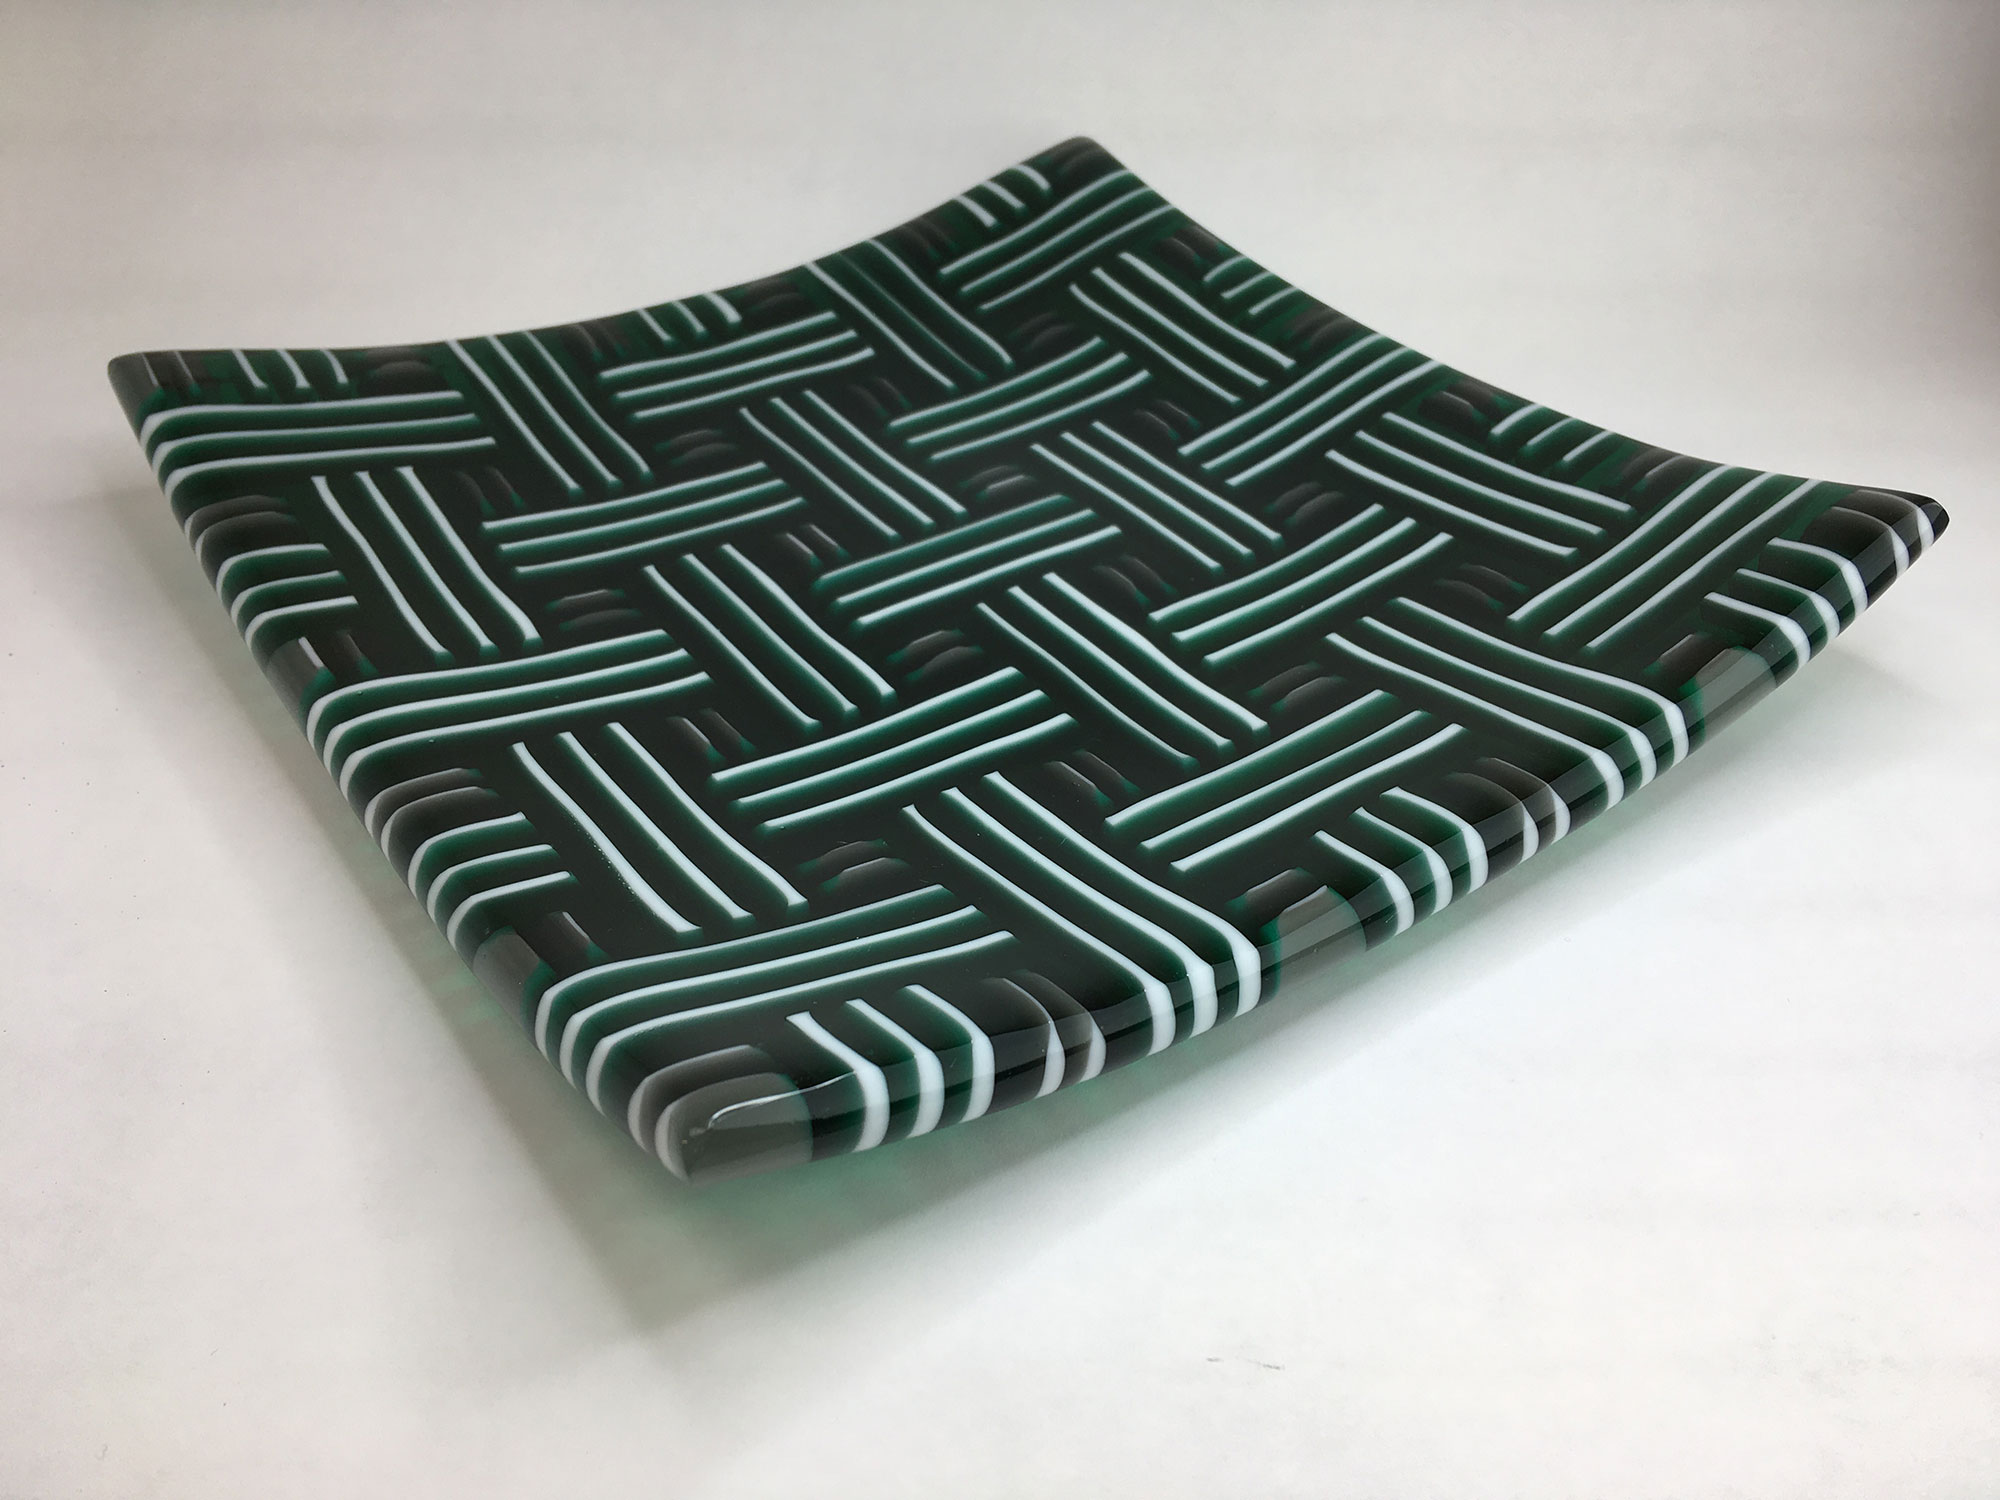 Green, Gray, and White Strip Cut Plate